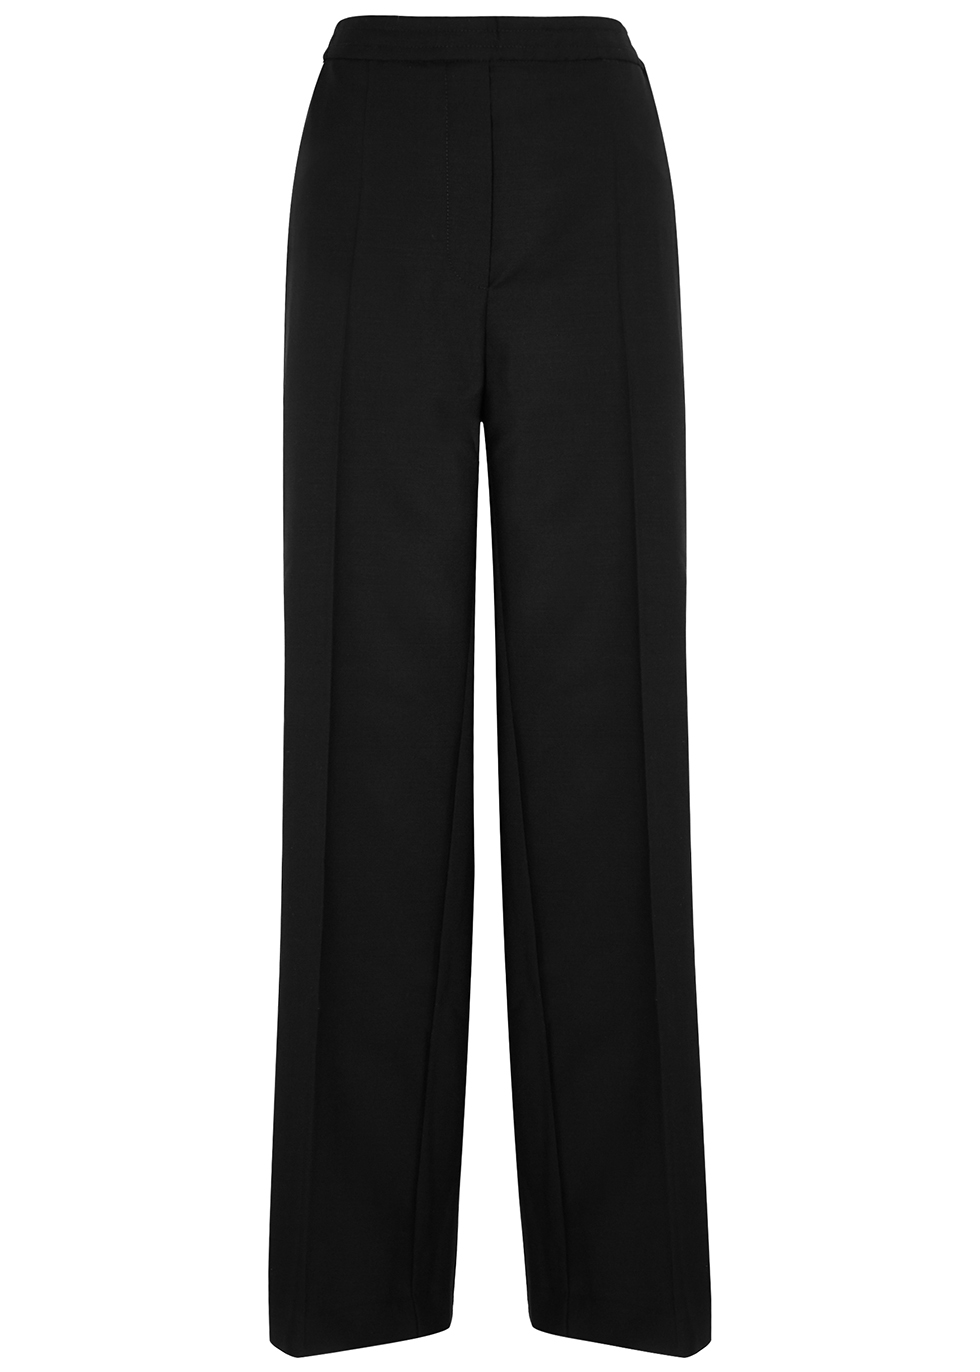 Paminne black straight-leg trousers